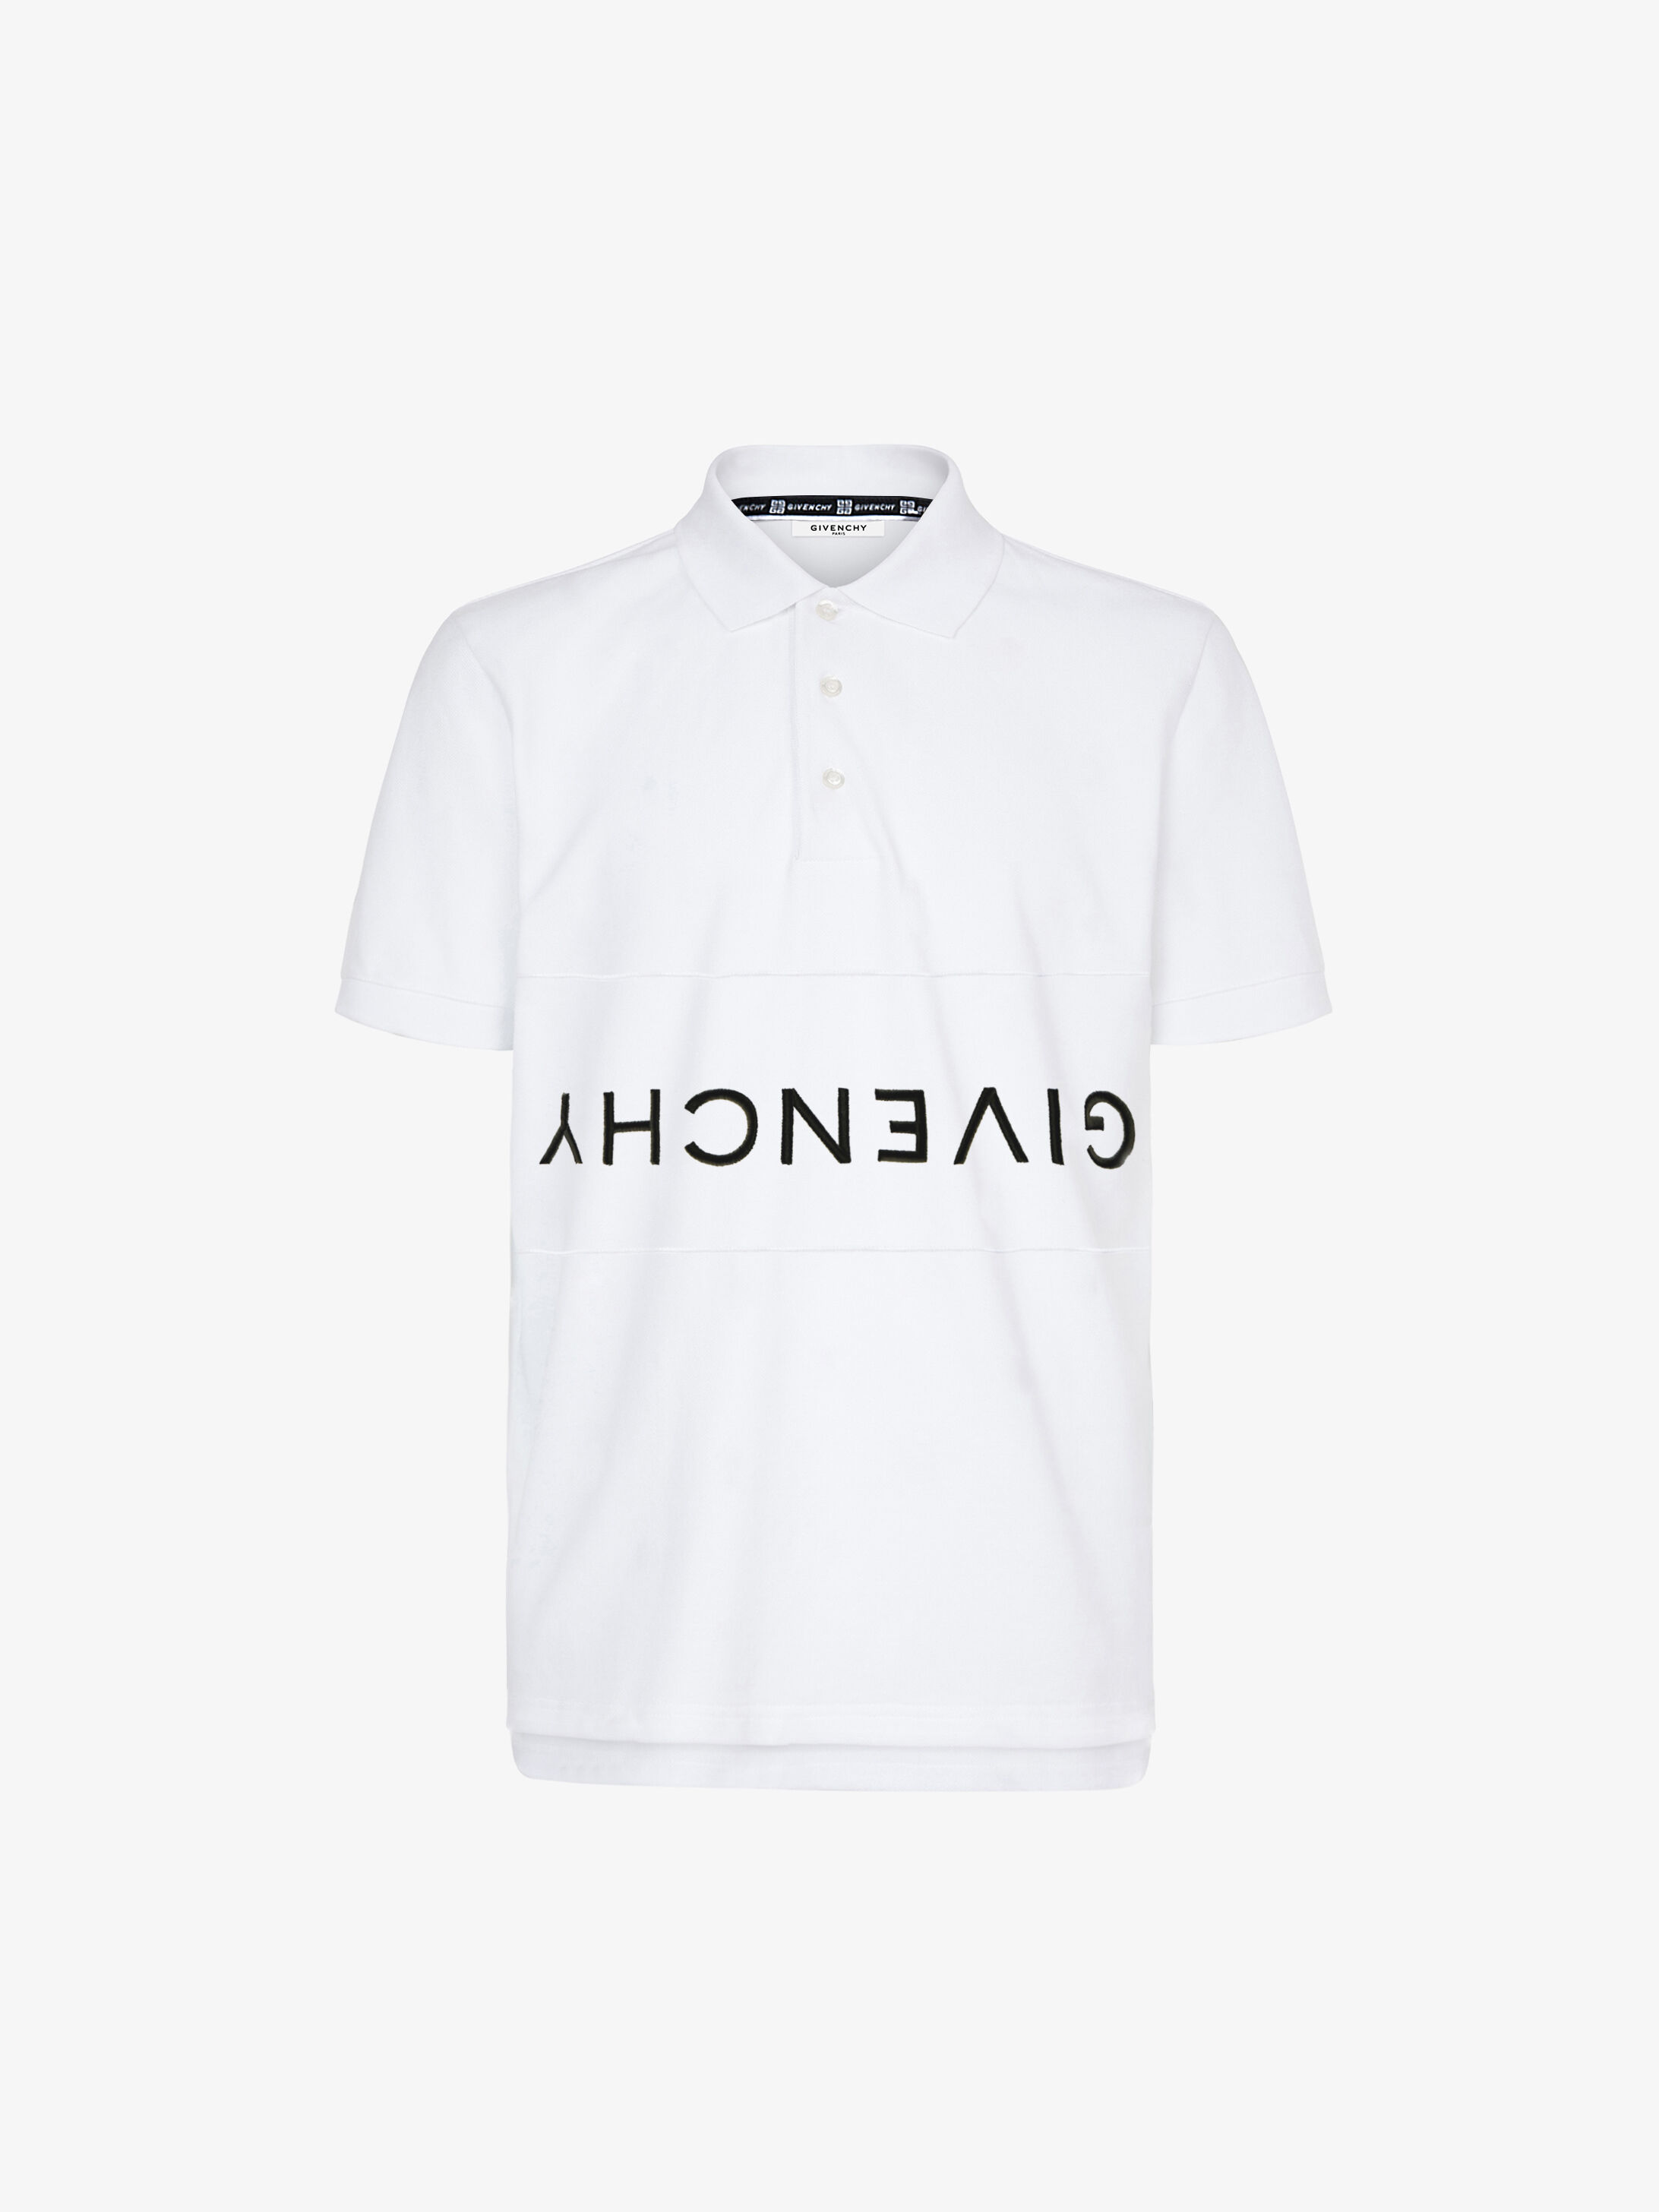 b7e428cc00a6e La collection T-shirts Homme par Givenchy.   GIVENCHY Paris